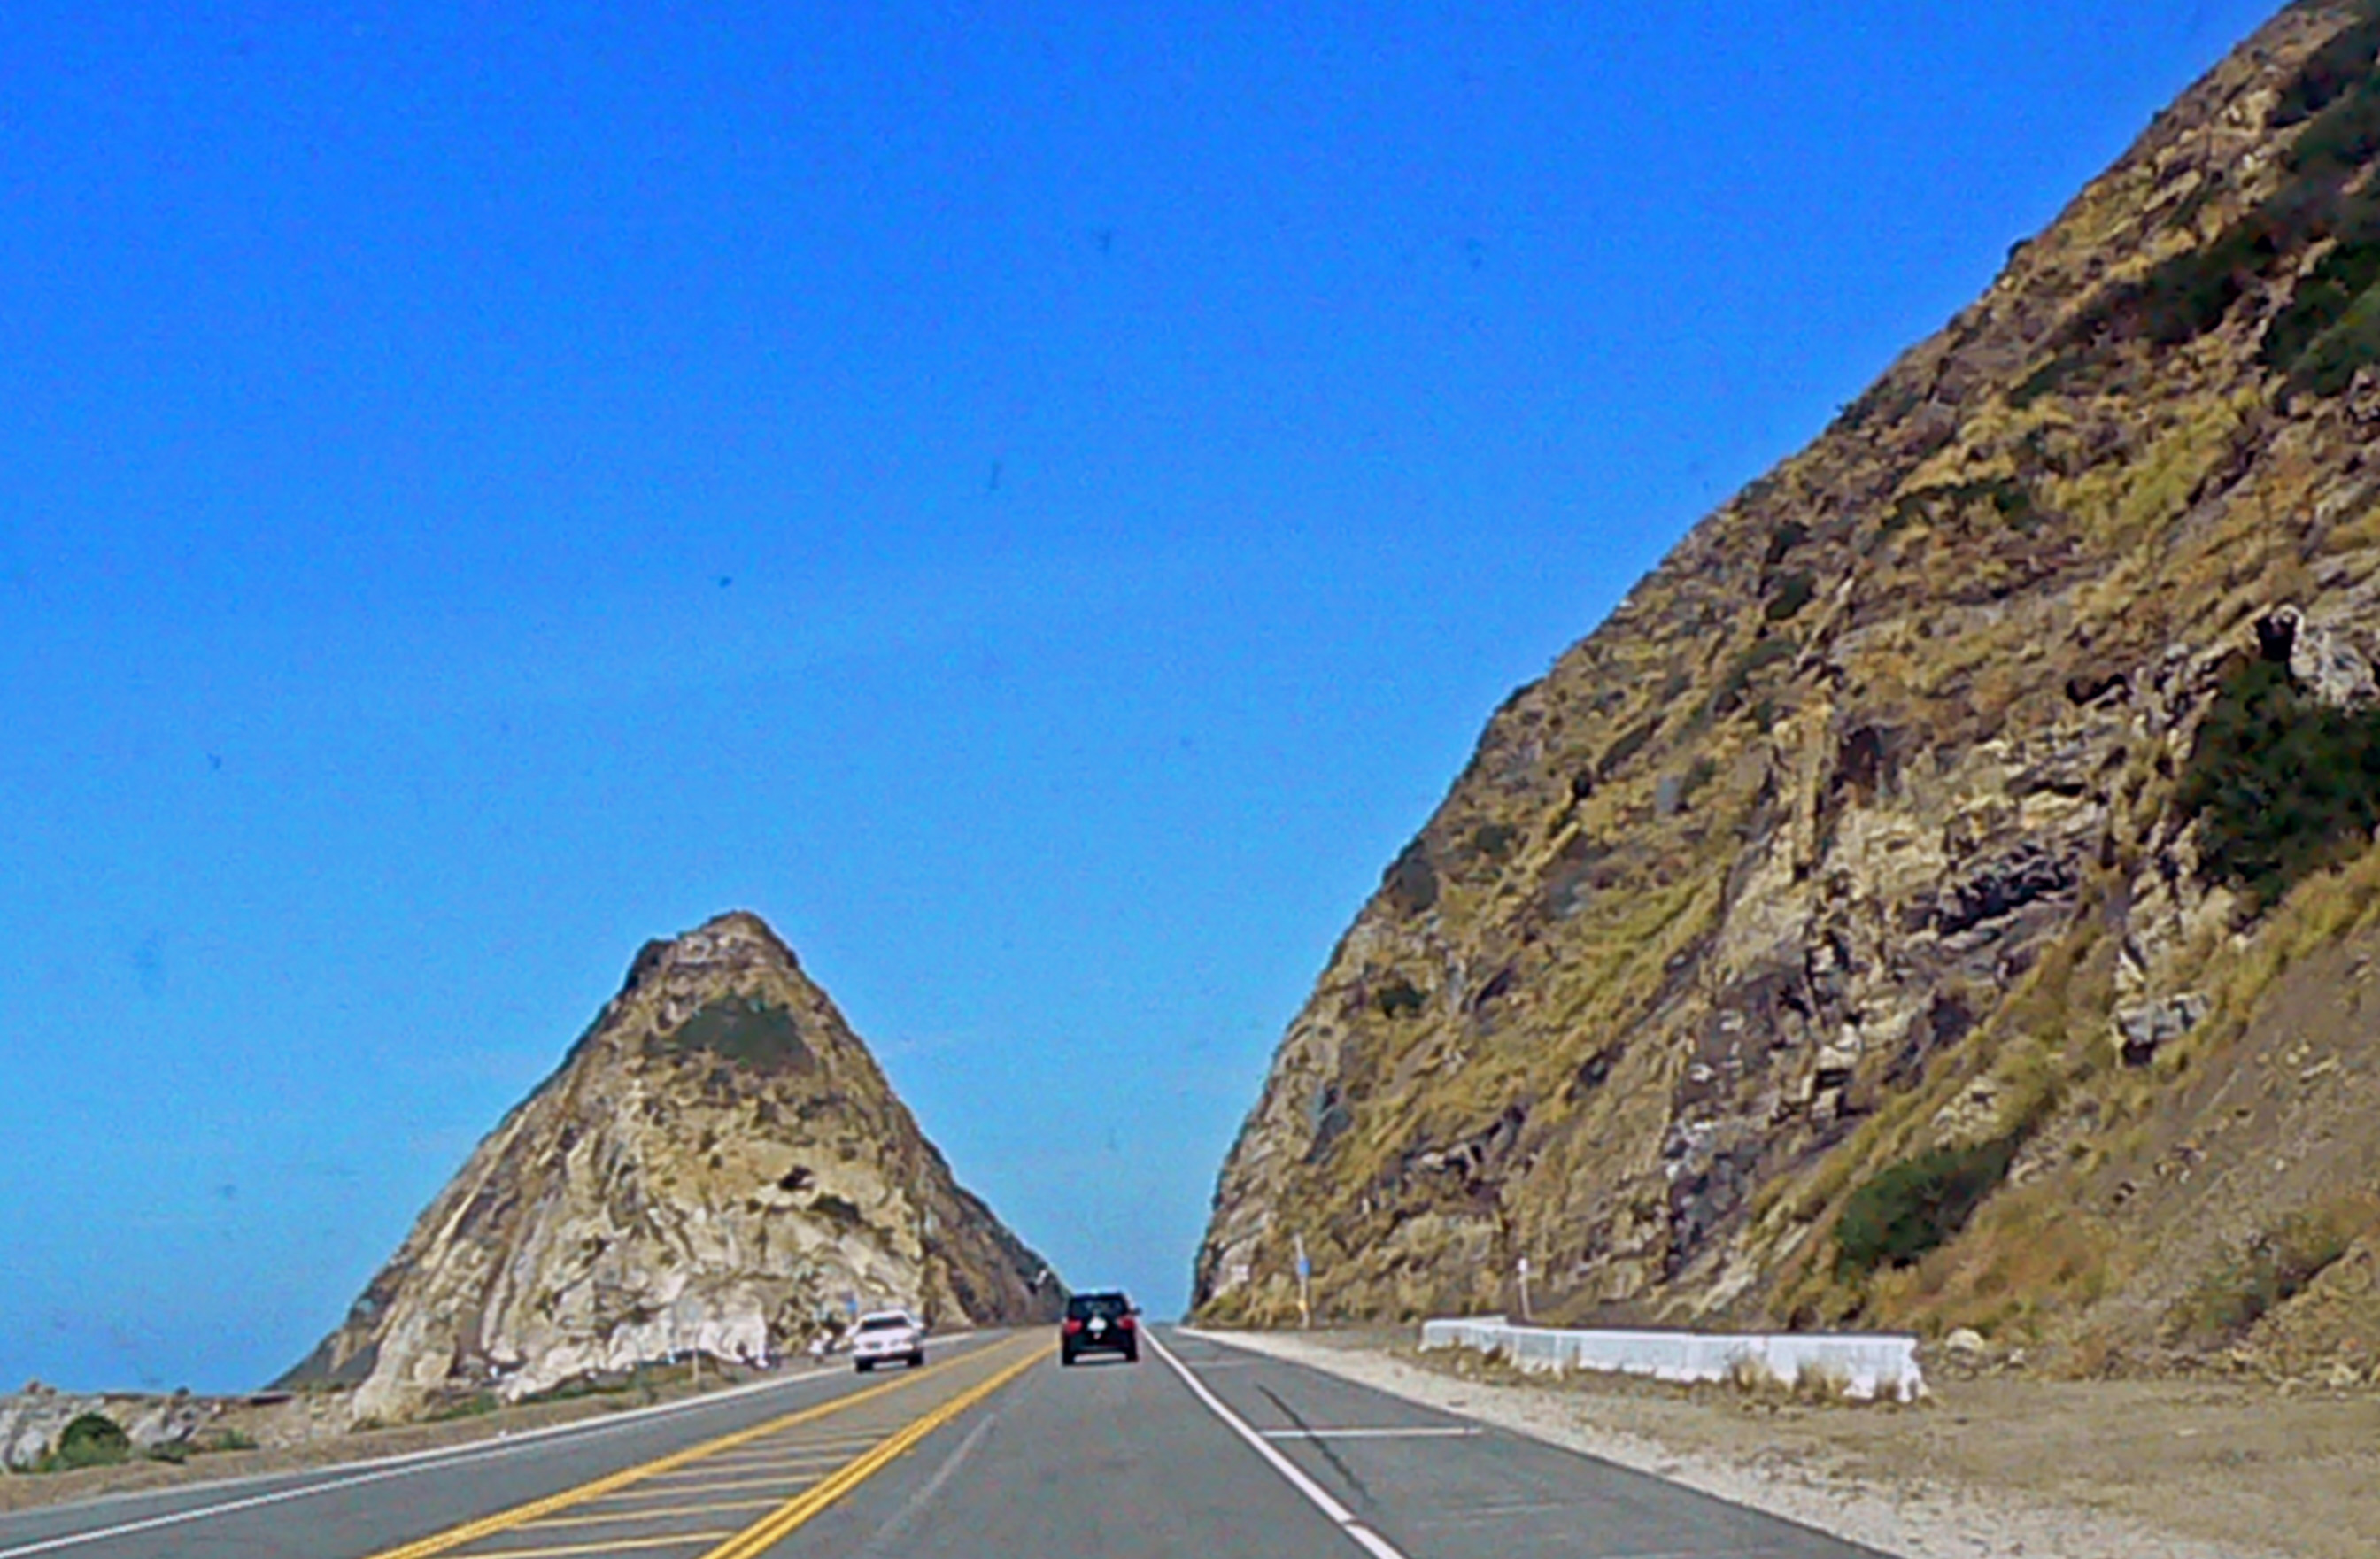 Point Mugu California Map.File Mugu Rock On California Route 1 Jpg Wikimedia Commons